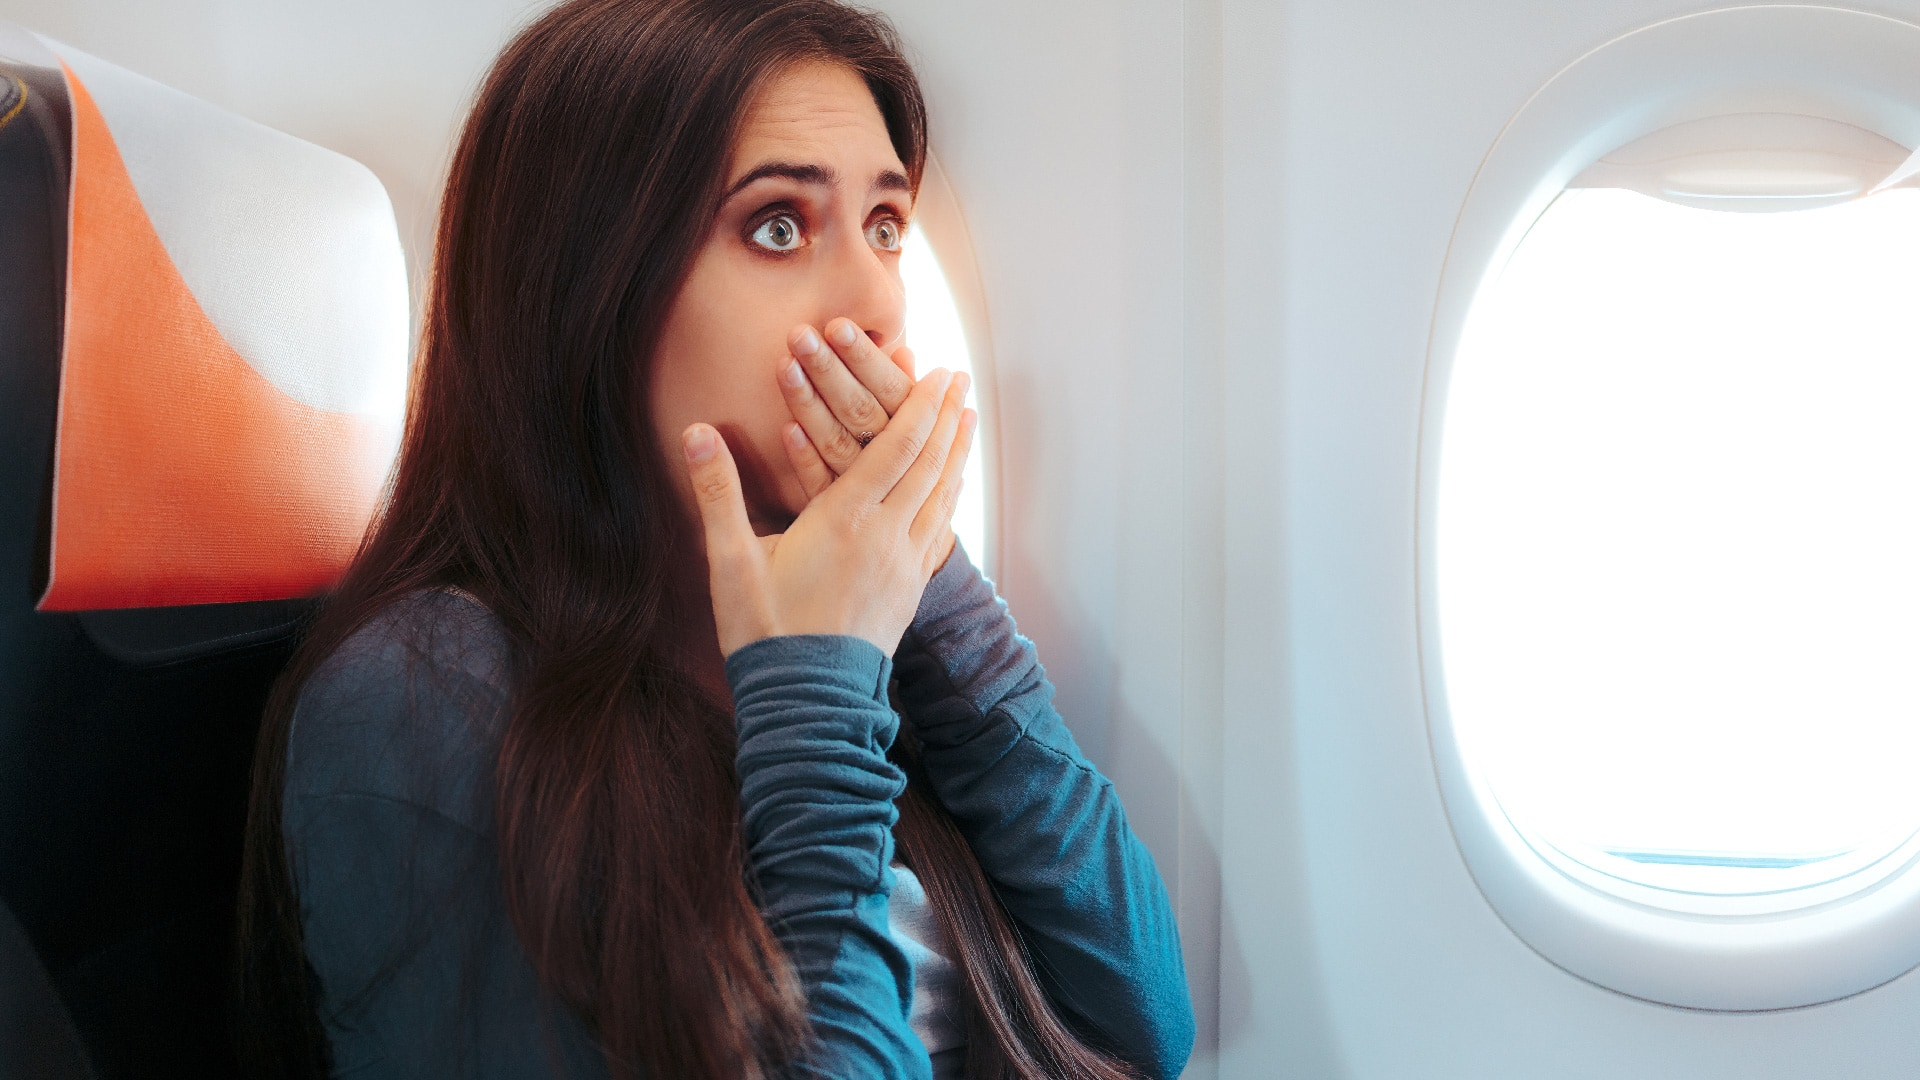 Avoid wearing strong fragrances on your flight